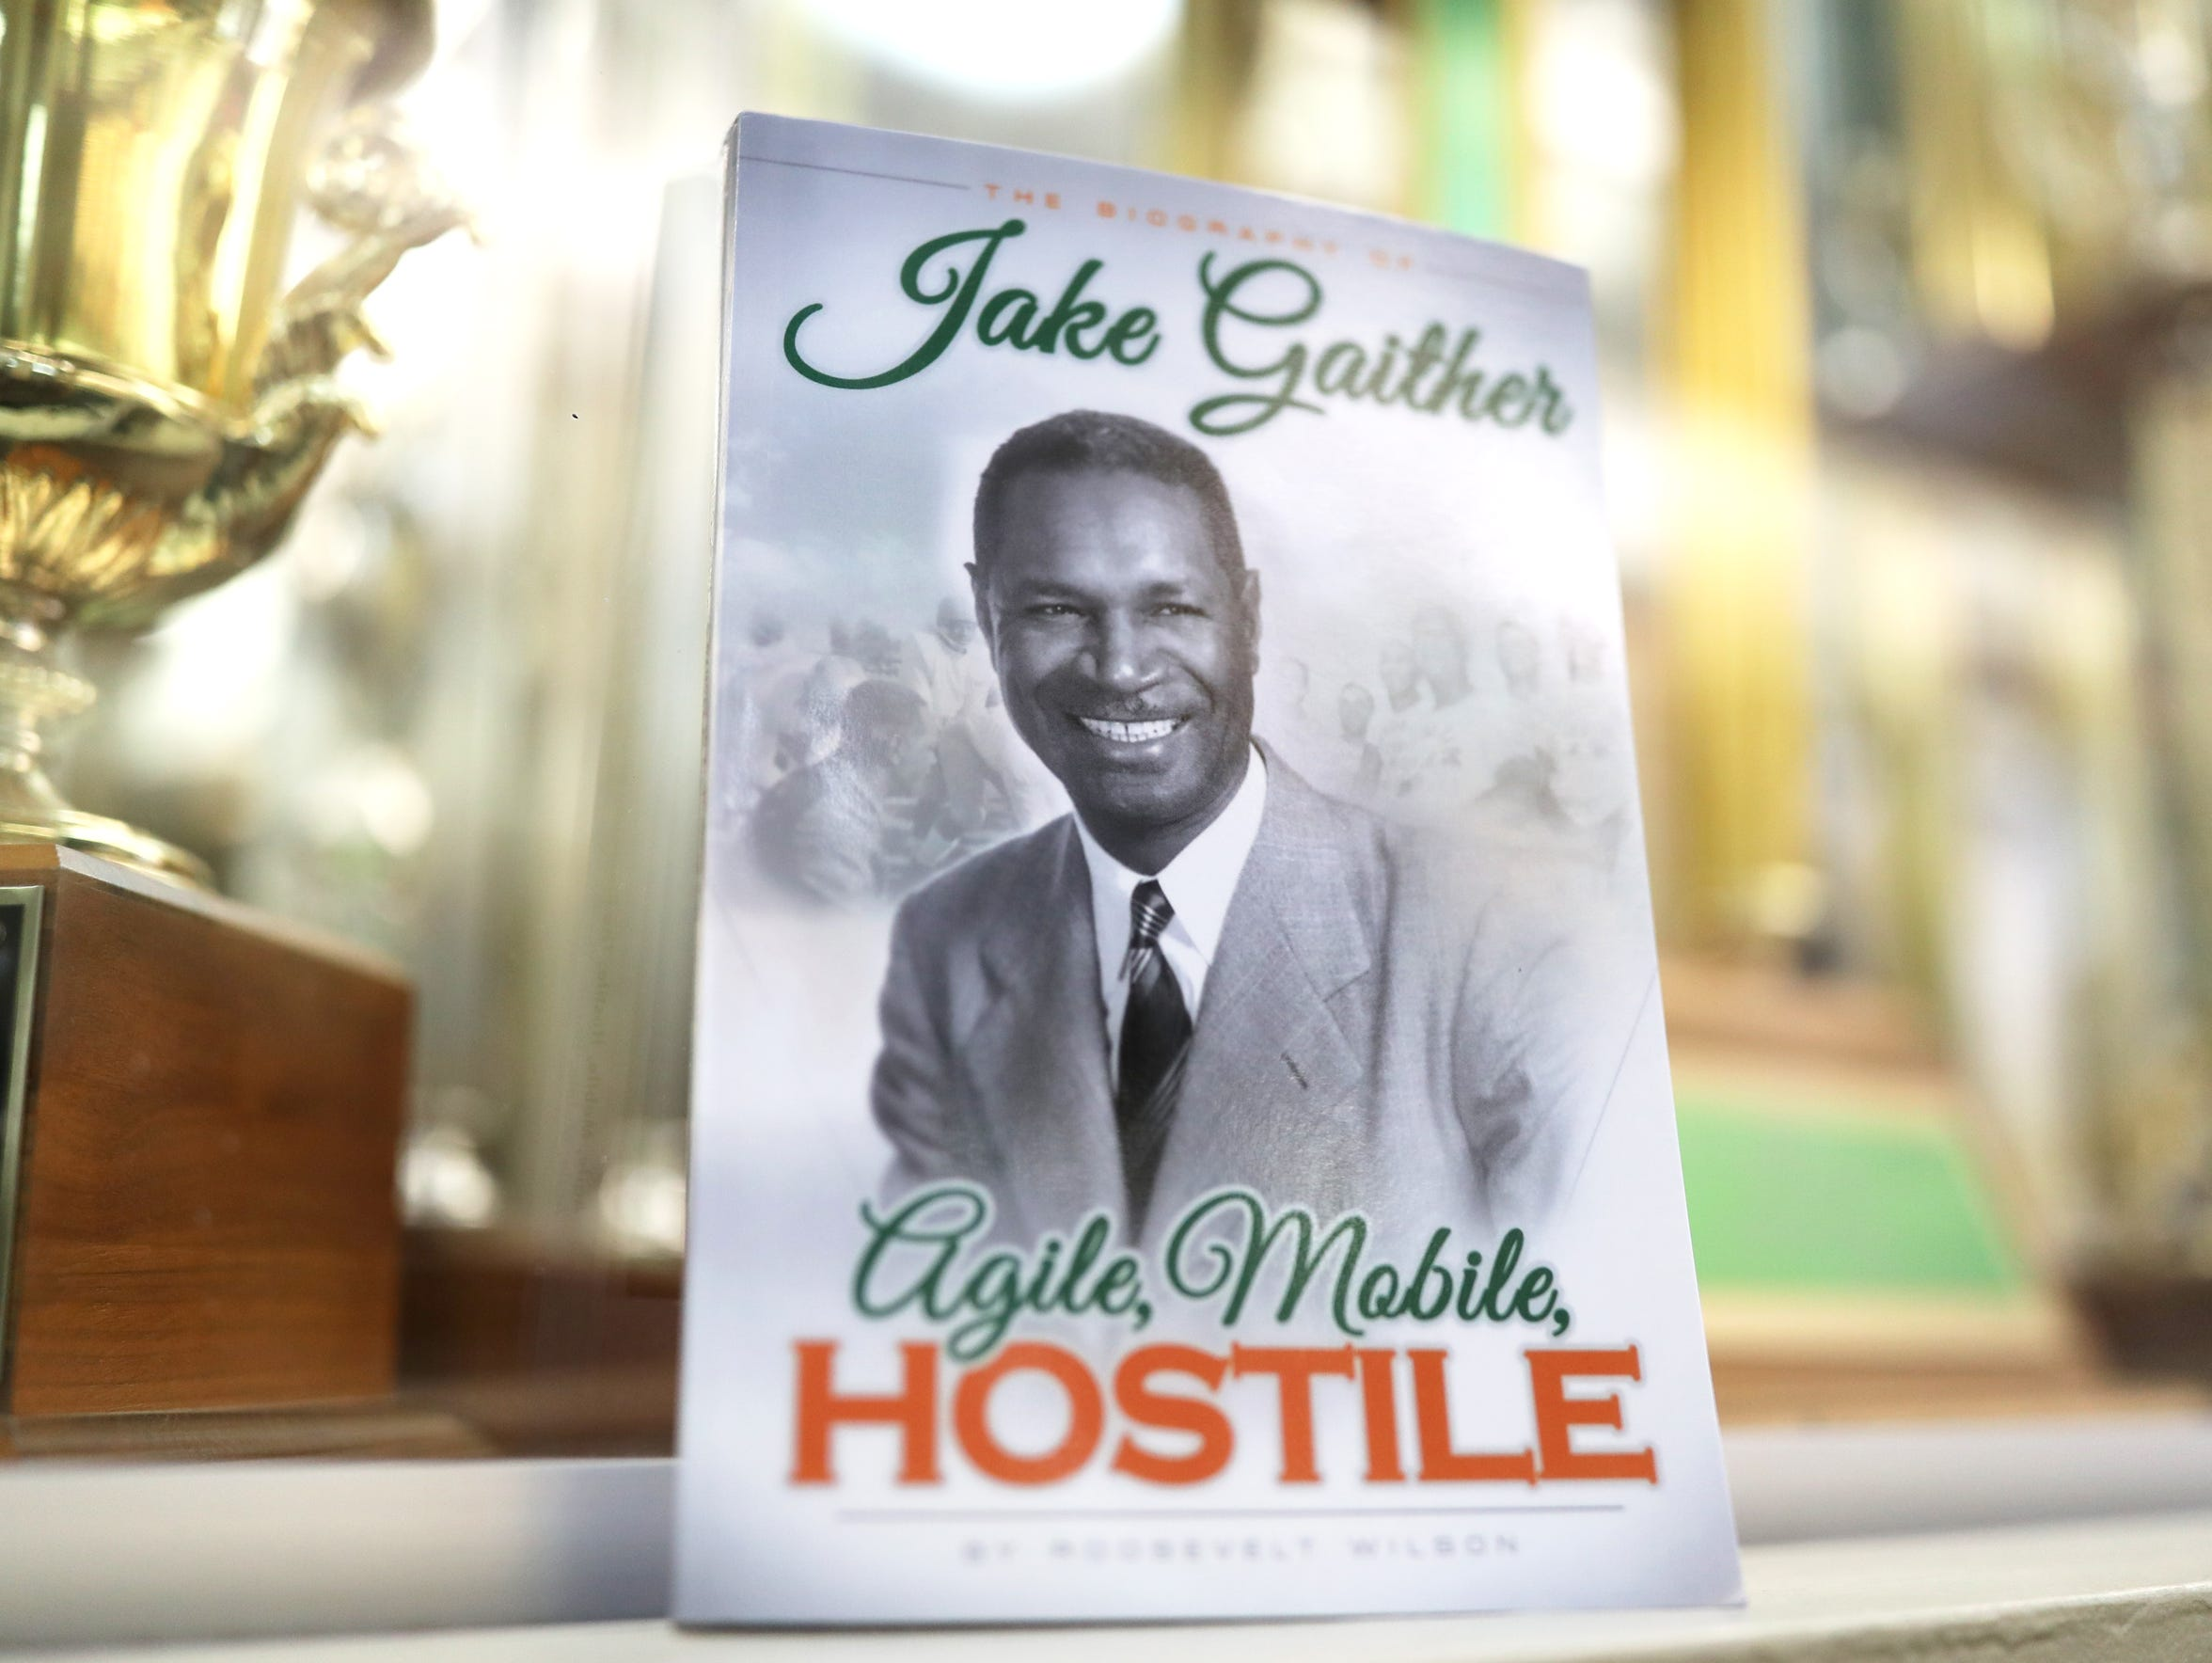 Roosevelt Wilson's soon to be released biography on